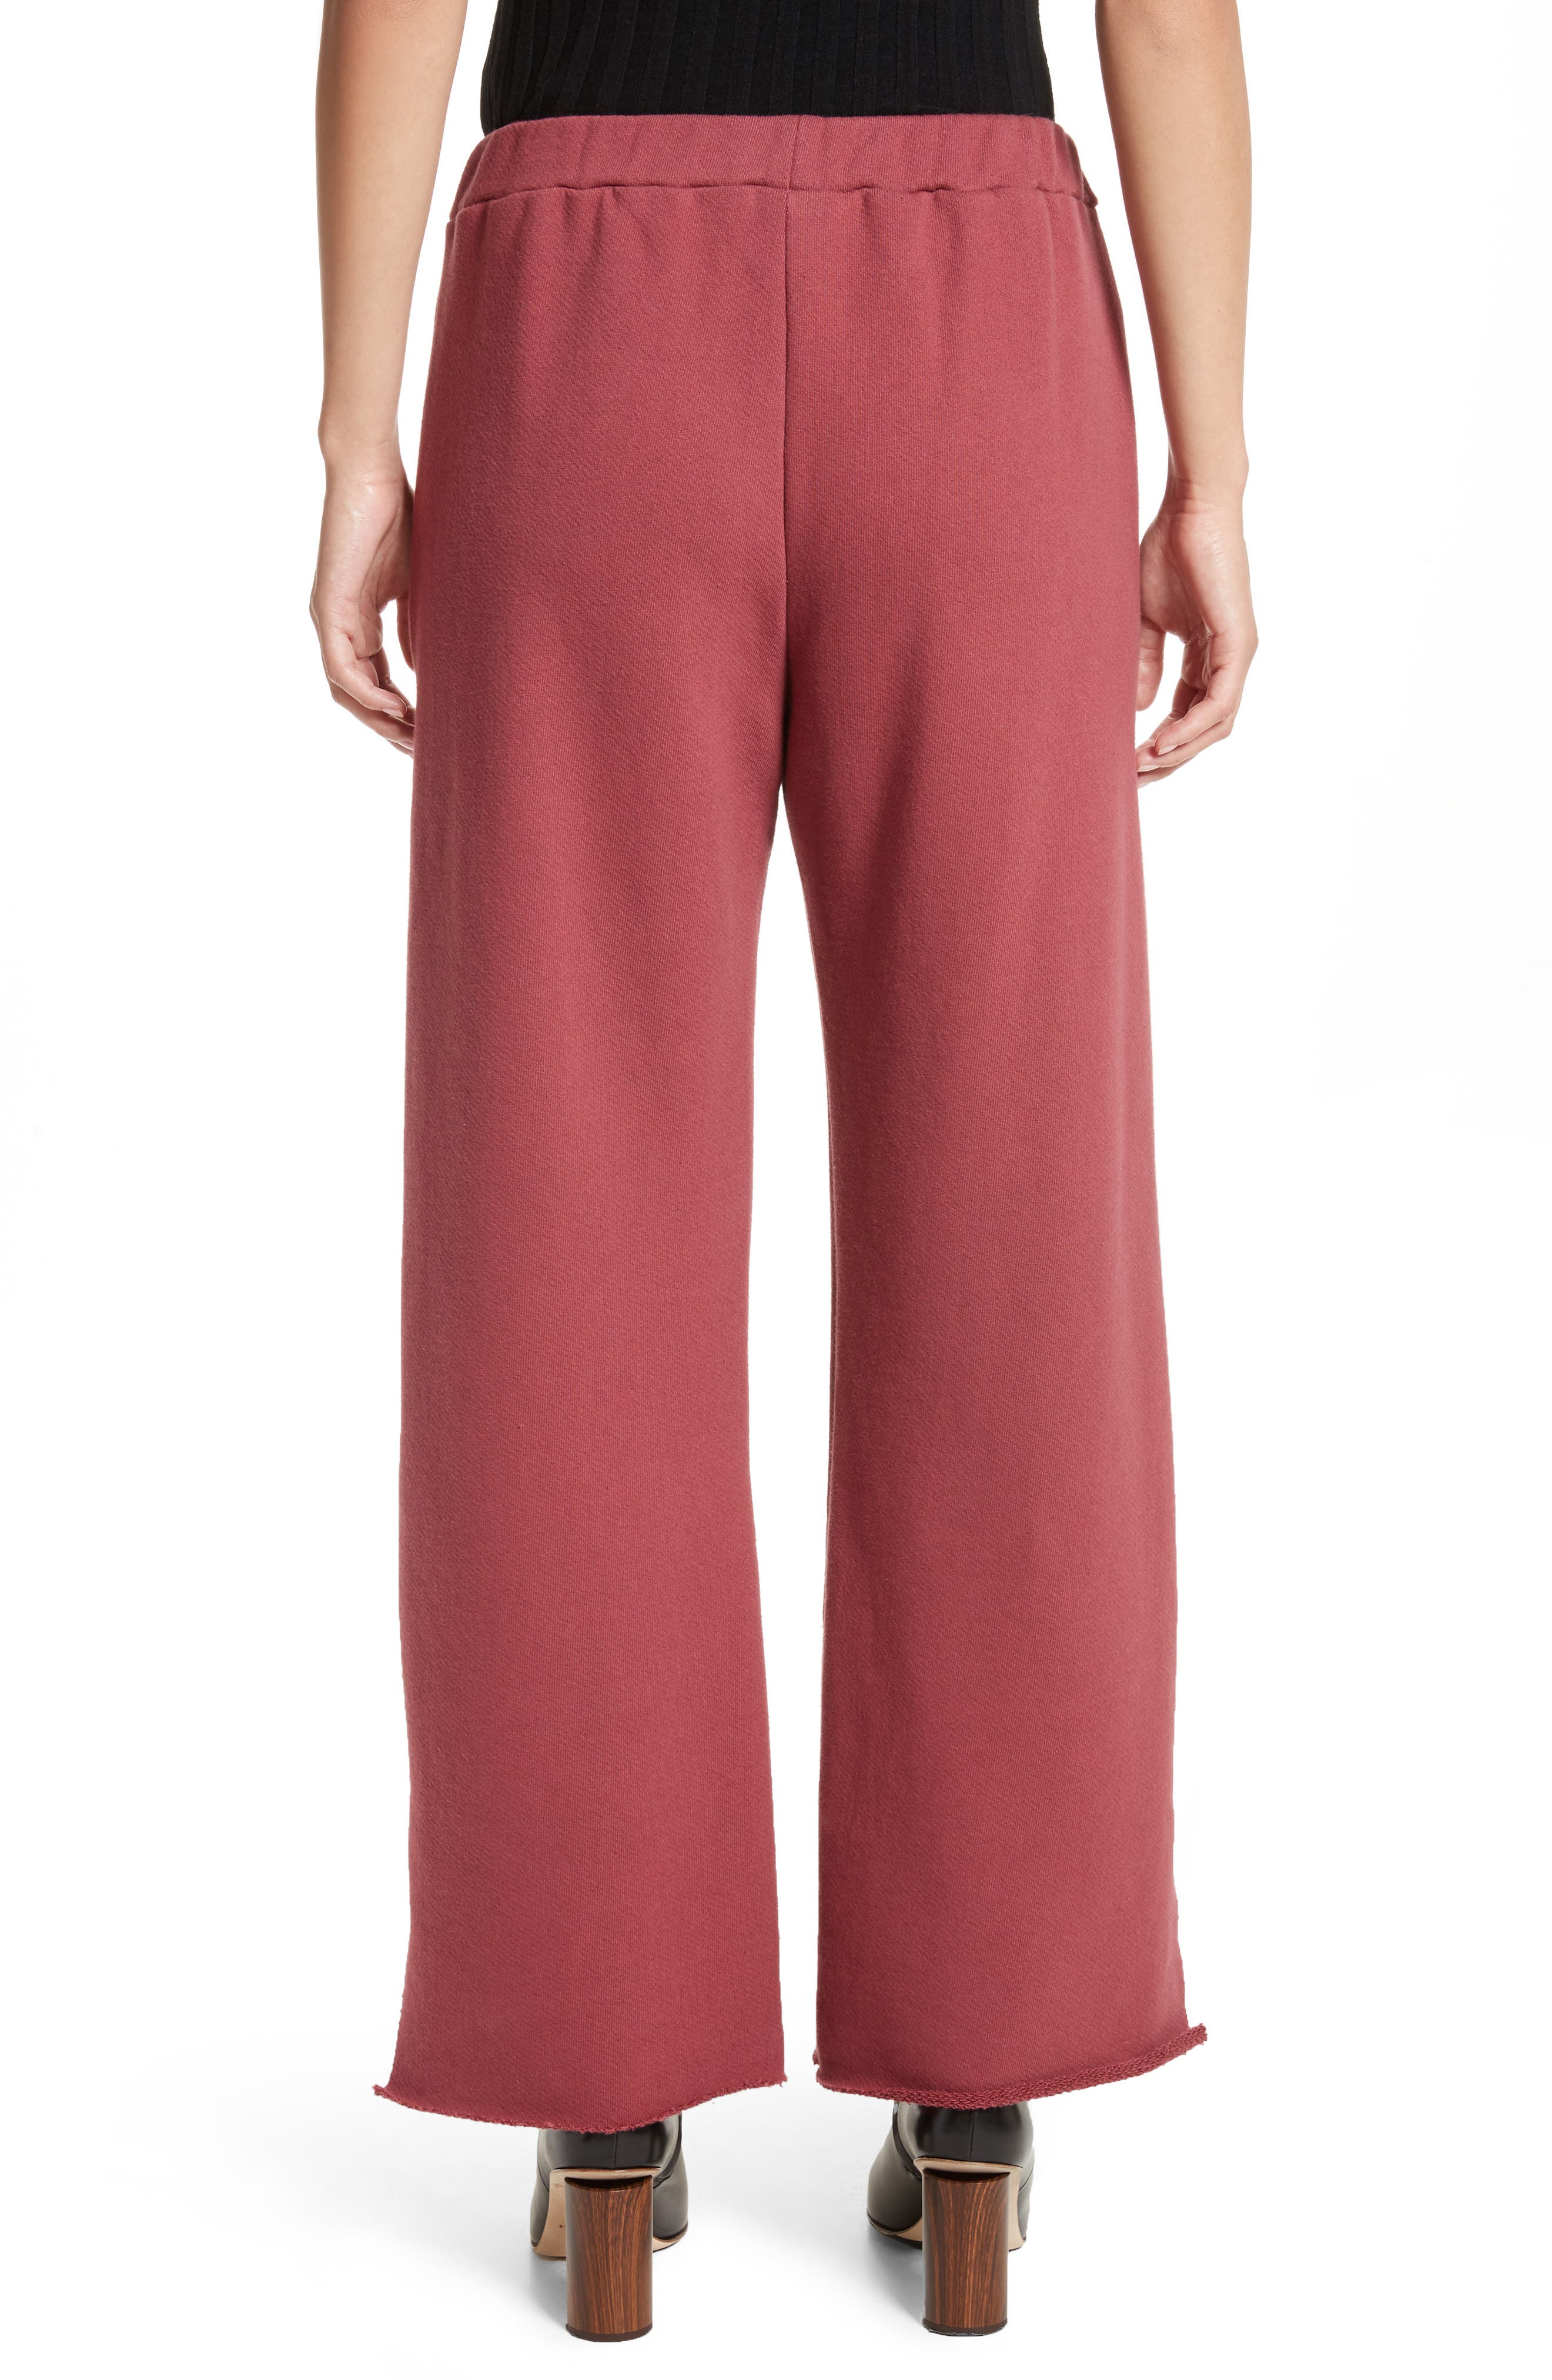 Canal French Terry Sweatpants,                             Alternate thumbnail 2, color,                             Tegola Pink